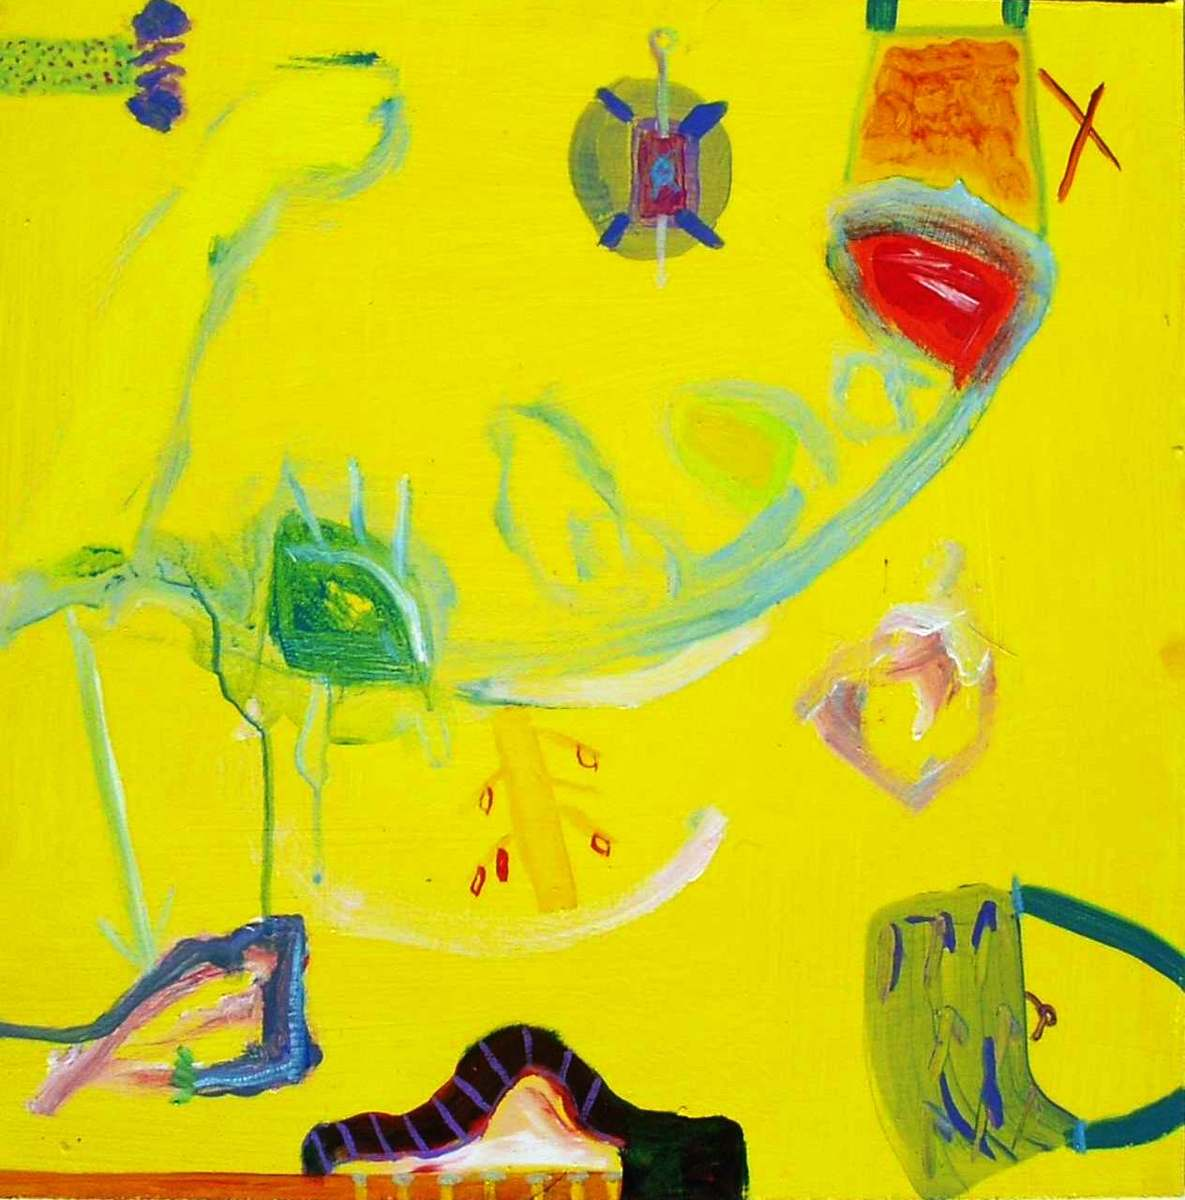 'Yellow Purse' 2015 (large view)